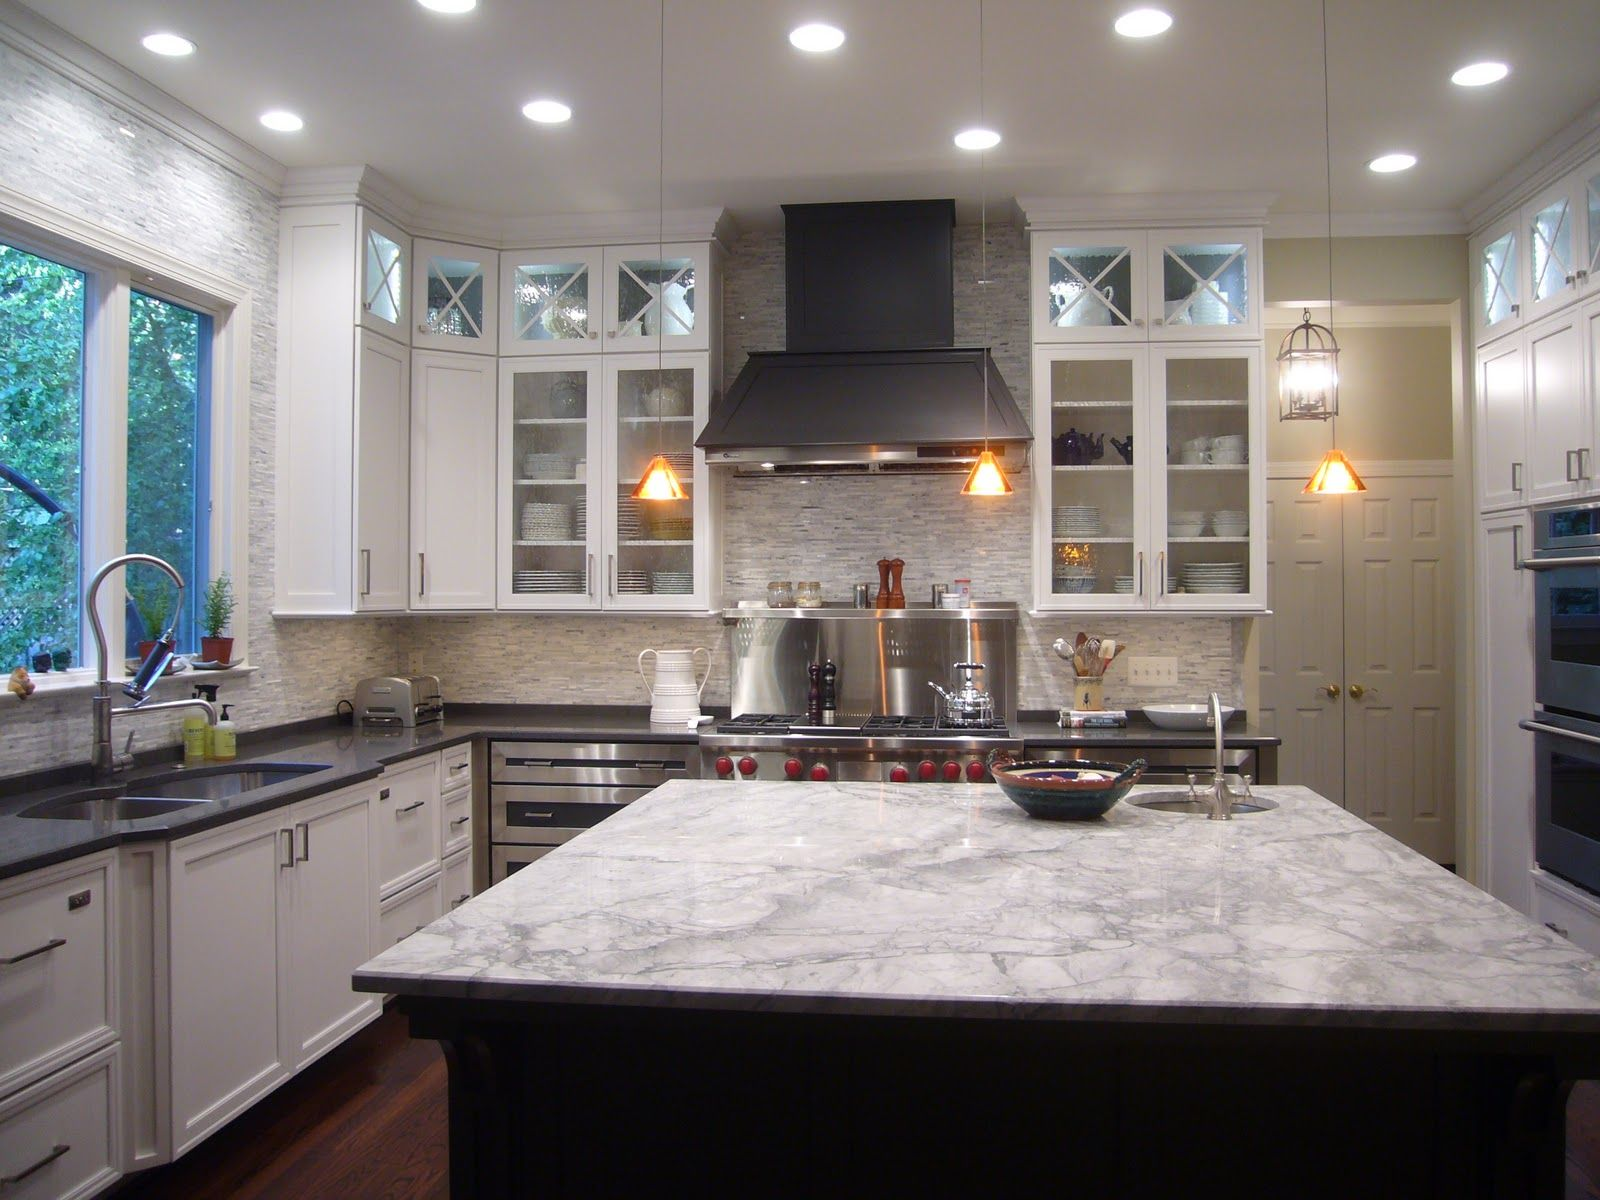 White Kitchens With Granite Countertops White Fantasy Granite Love So Many Details In The Kitchen